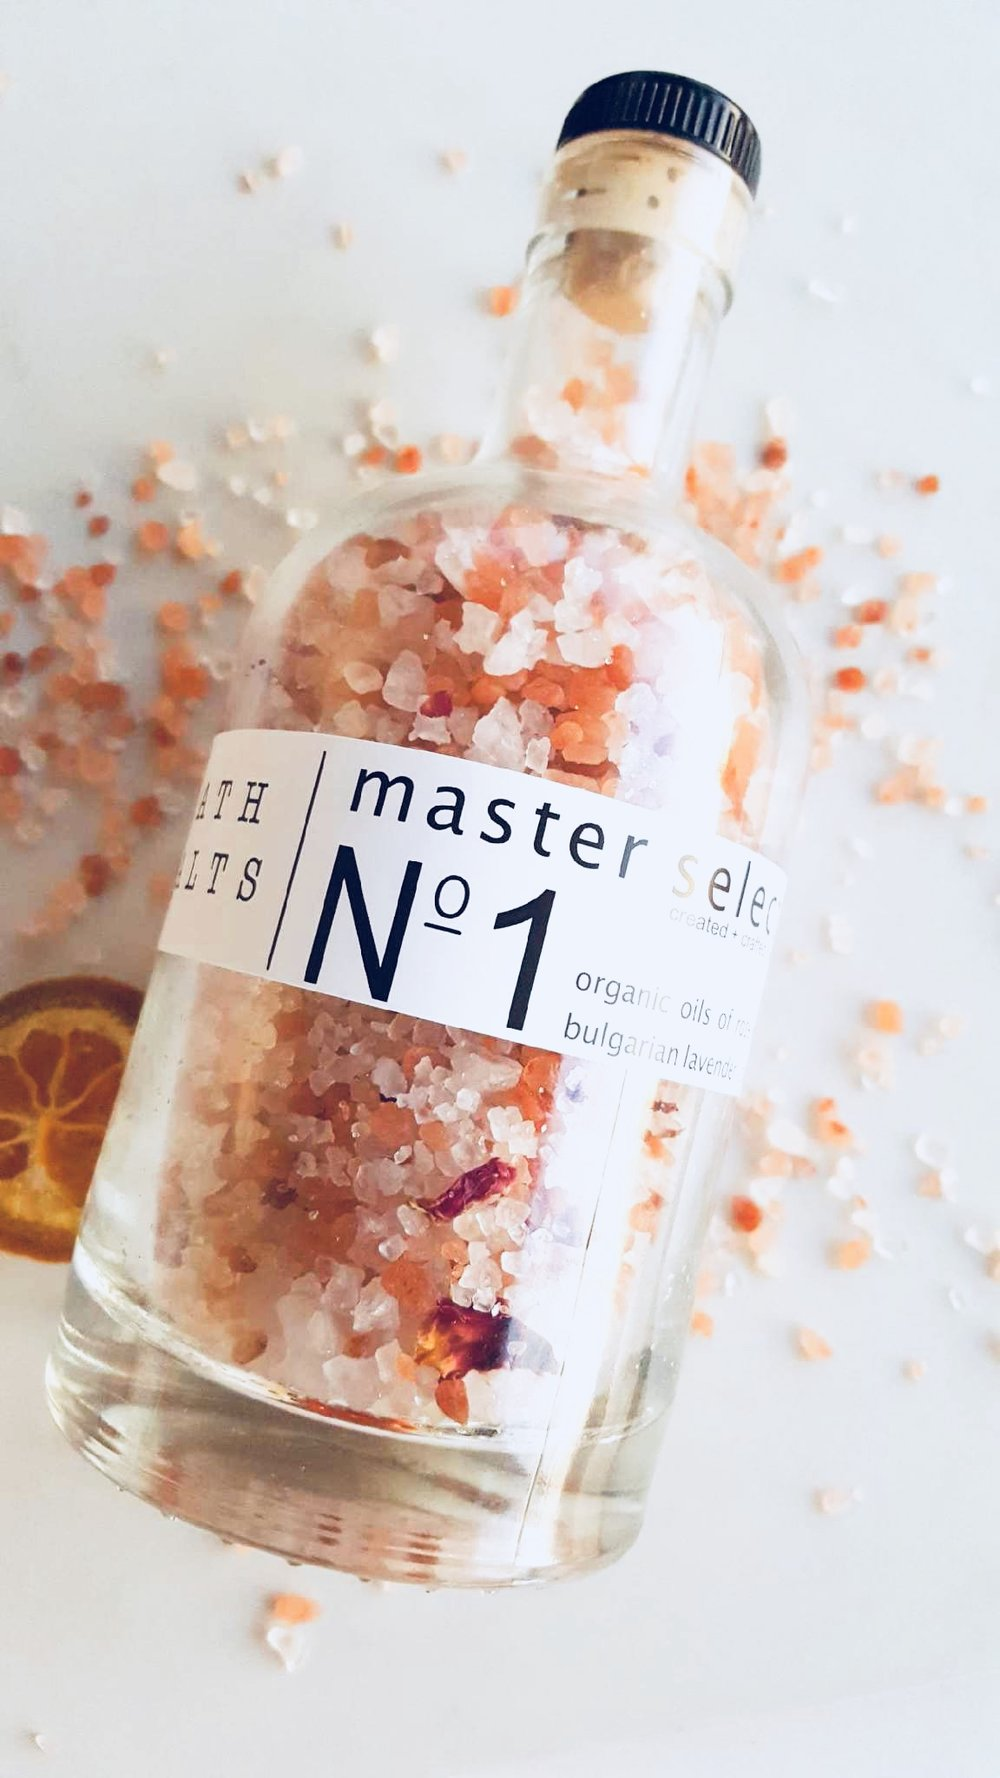 """Master Selection Bath Salt No. 1 - """"A blend of mineral-rich Mediterranean and dead sea salts along with Pink Himalayan Sea Salt make a relaxing and detoxifying soak, while organic botanicals create a luxurious spa experience in your tub. Our Pink Himalayan Sea Salt is sourced from deep within the pristine Himalayan mountains lending to the belief that Himalayan Pink salt is the purest salt to be found on earth. With sensual oils rose geranium, Bulgarian lavender, and patchouli."""""""